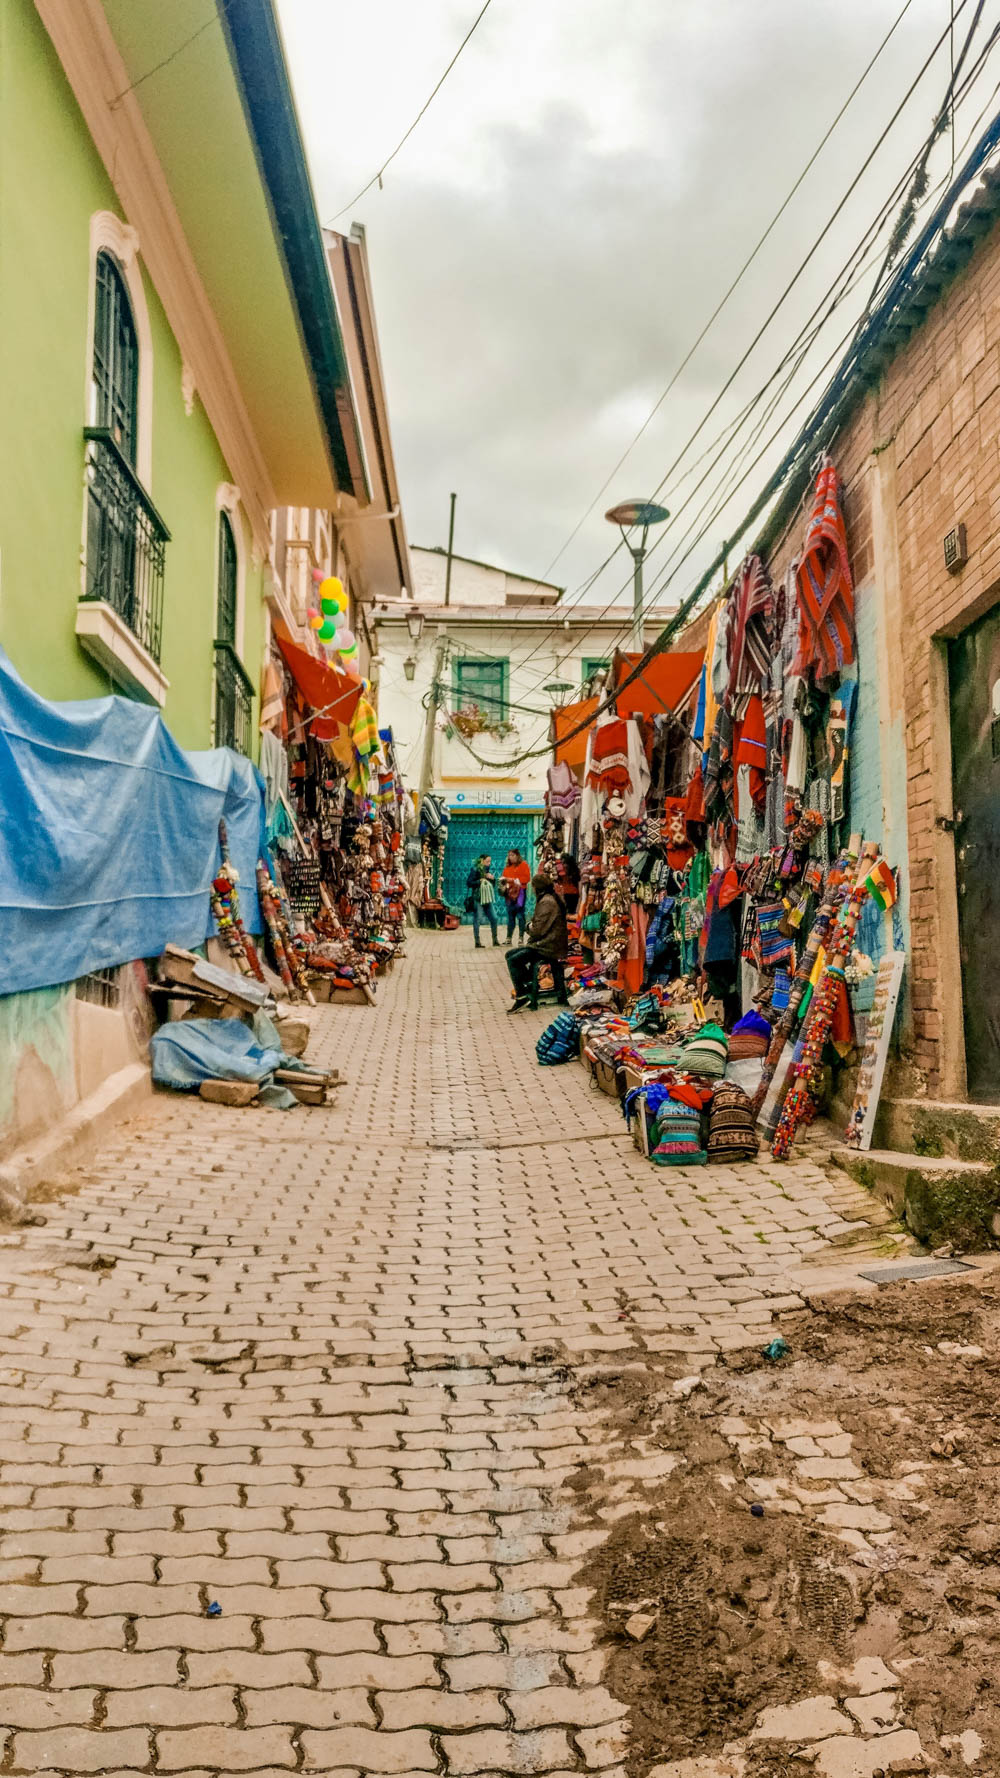 Witches' Market - Best places to visit in La Paz, Bolivia | Aliz's Wonderland